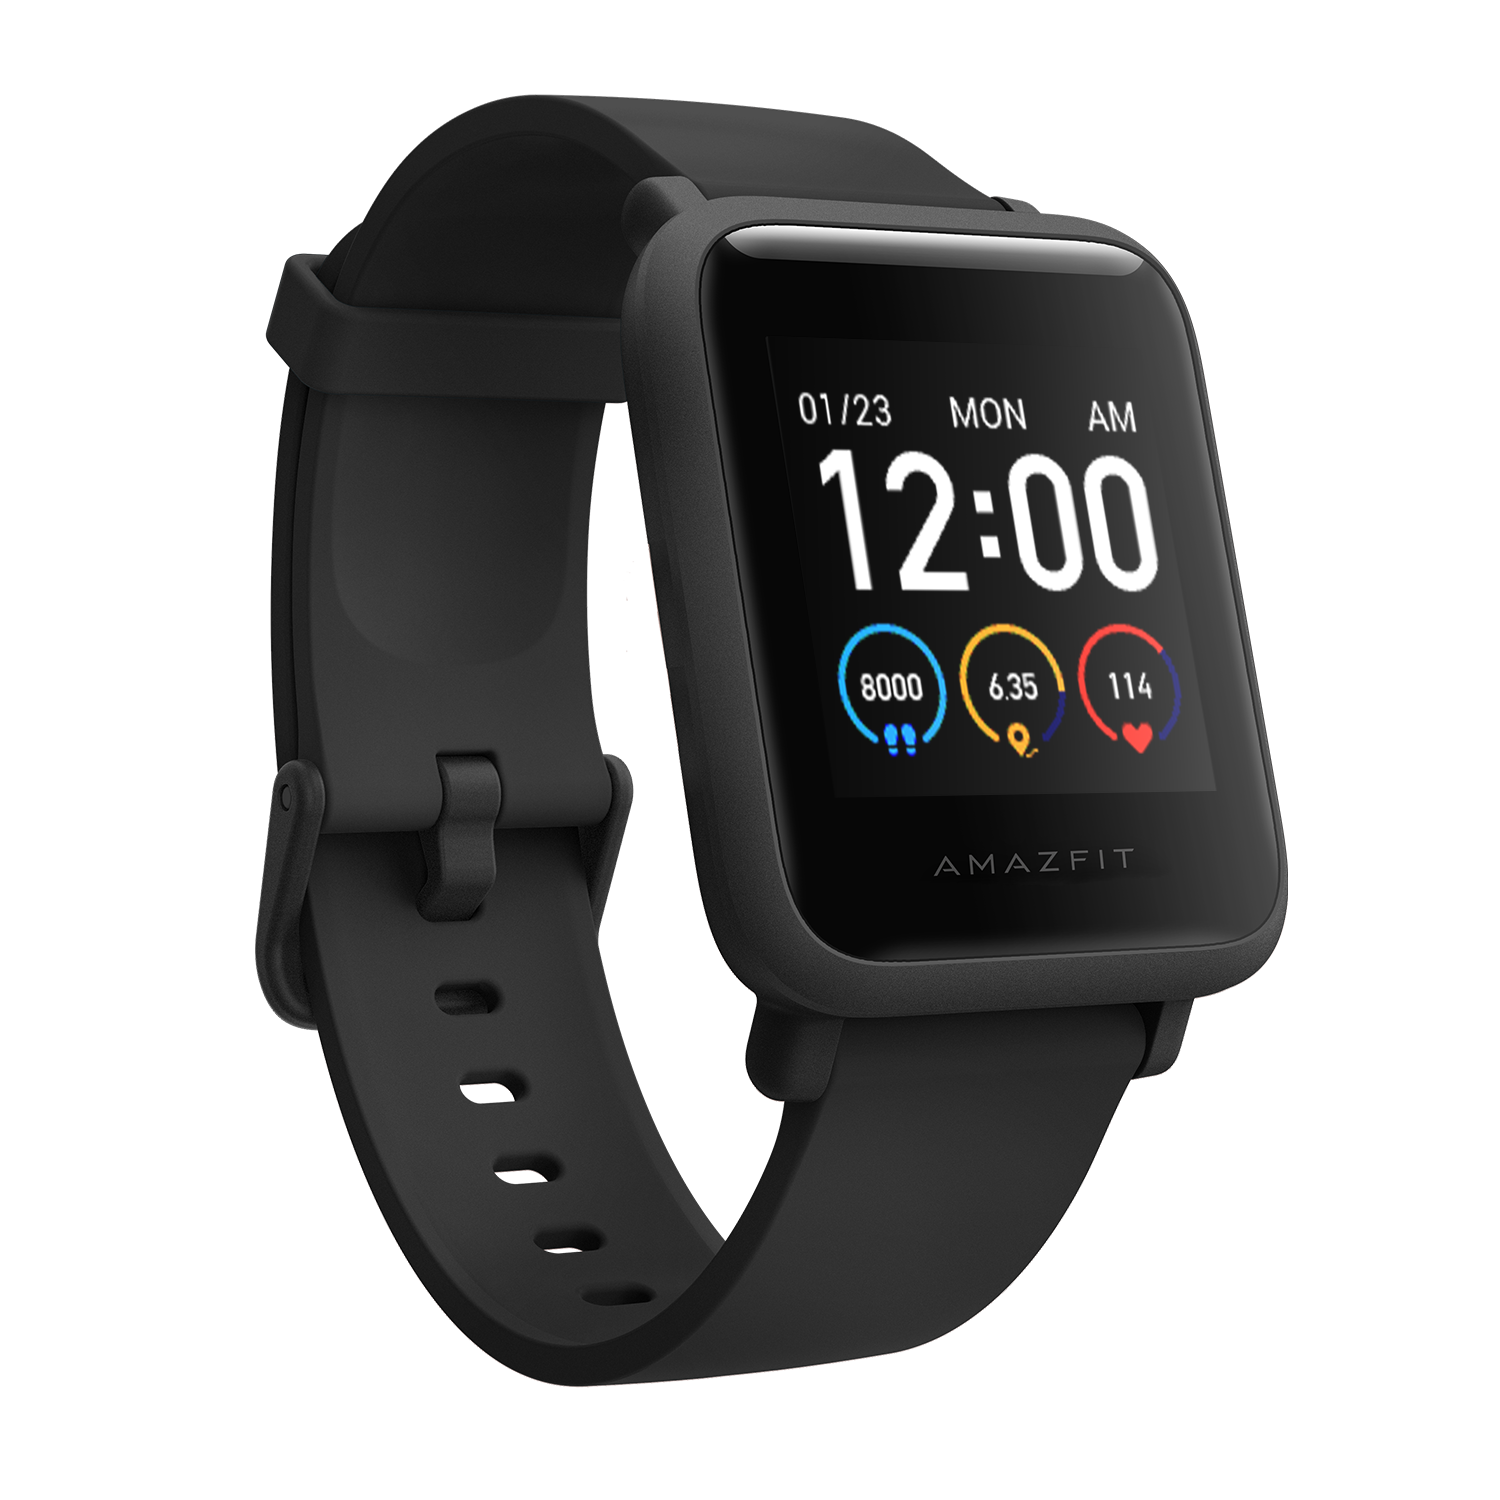 Amazfit Bip S Lite to Go on Flash Sale in India on July 29, Price Revealed